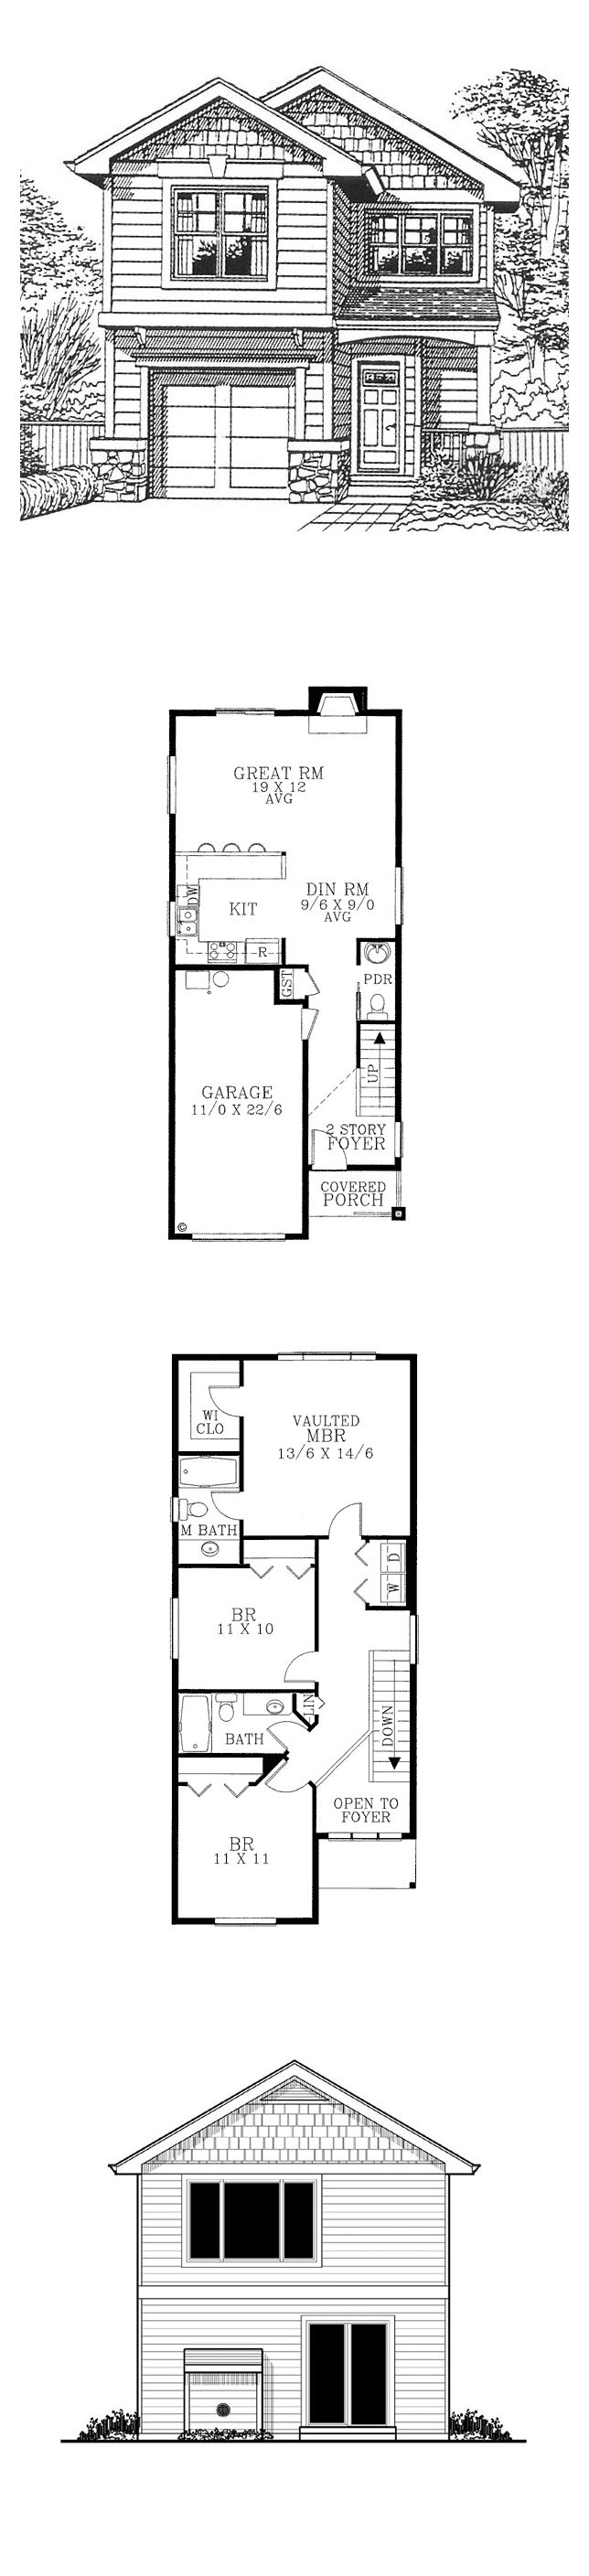 Narrow lot home plan 91470 total living area 1400 sq for Narrow bathroom floor plans